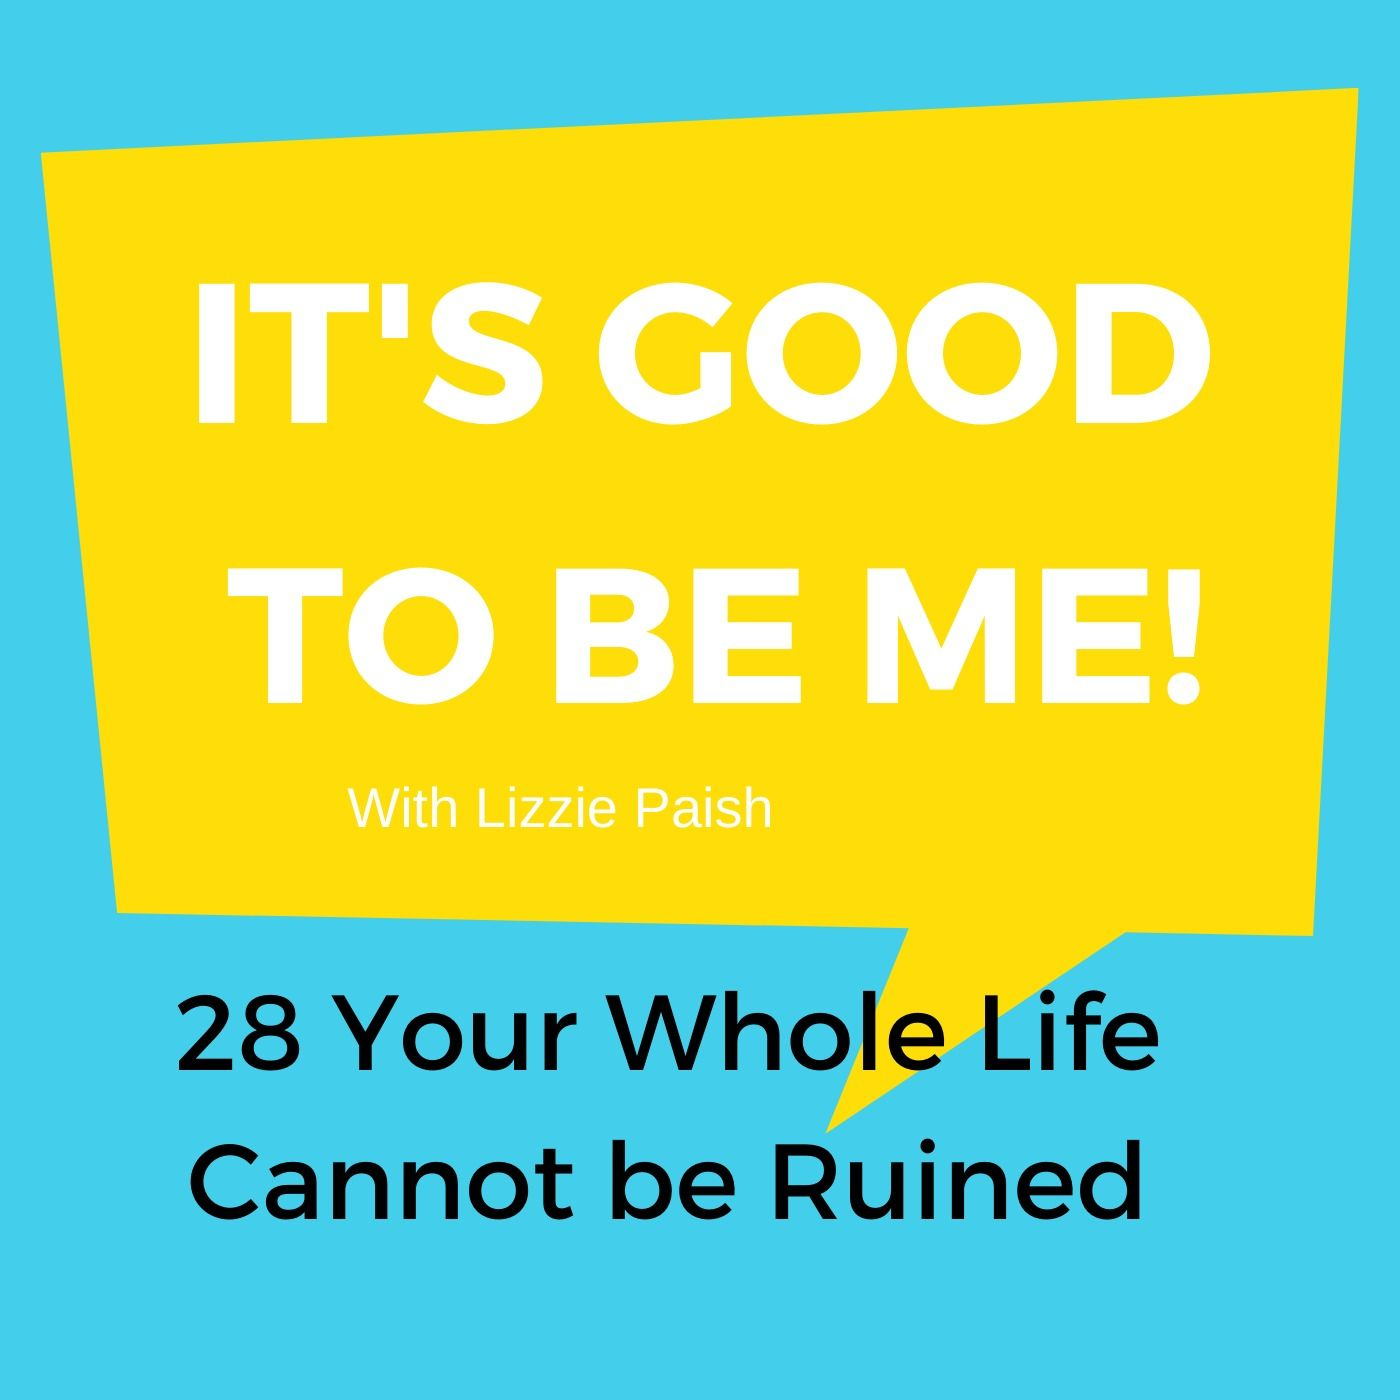 Your Whole Life Cannot be Ruined